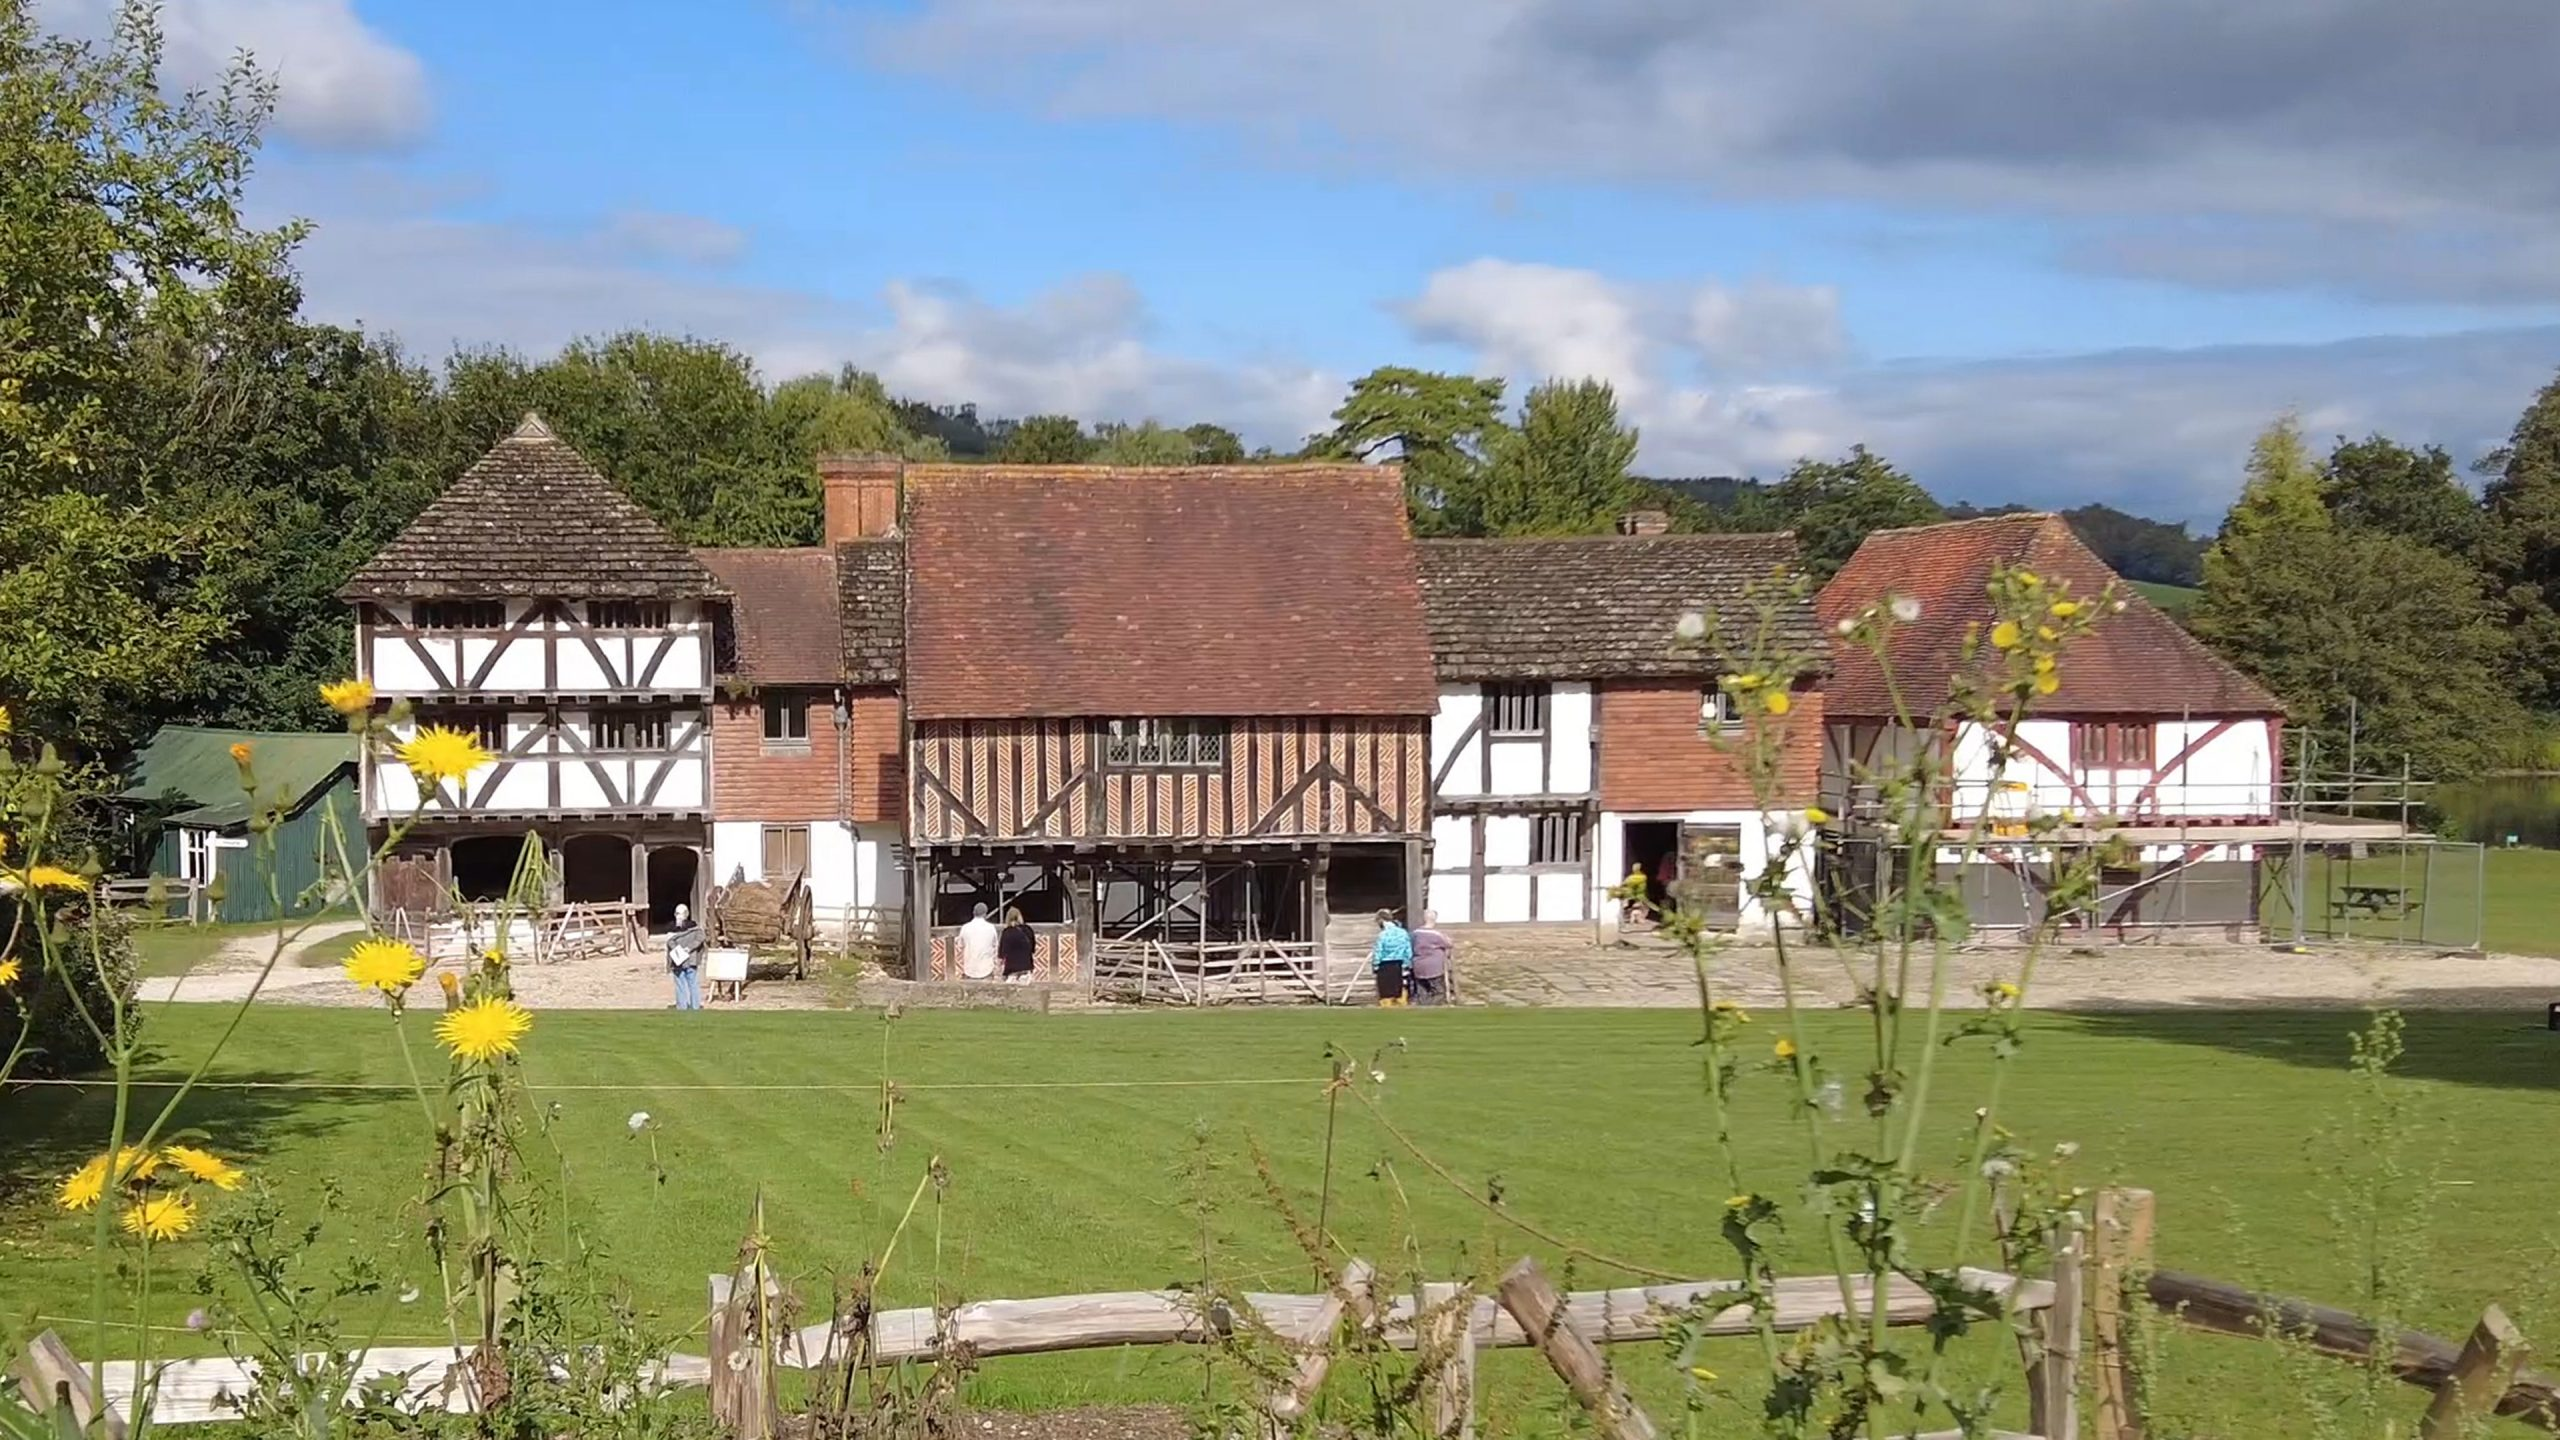 The Weald and Downland Living Museum